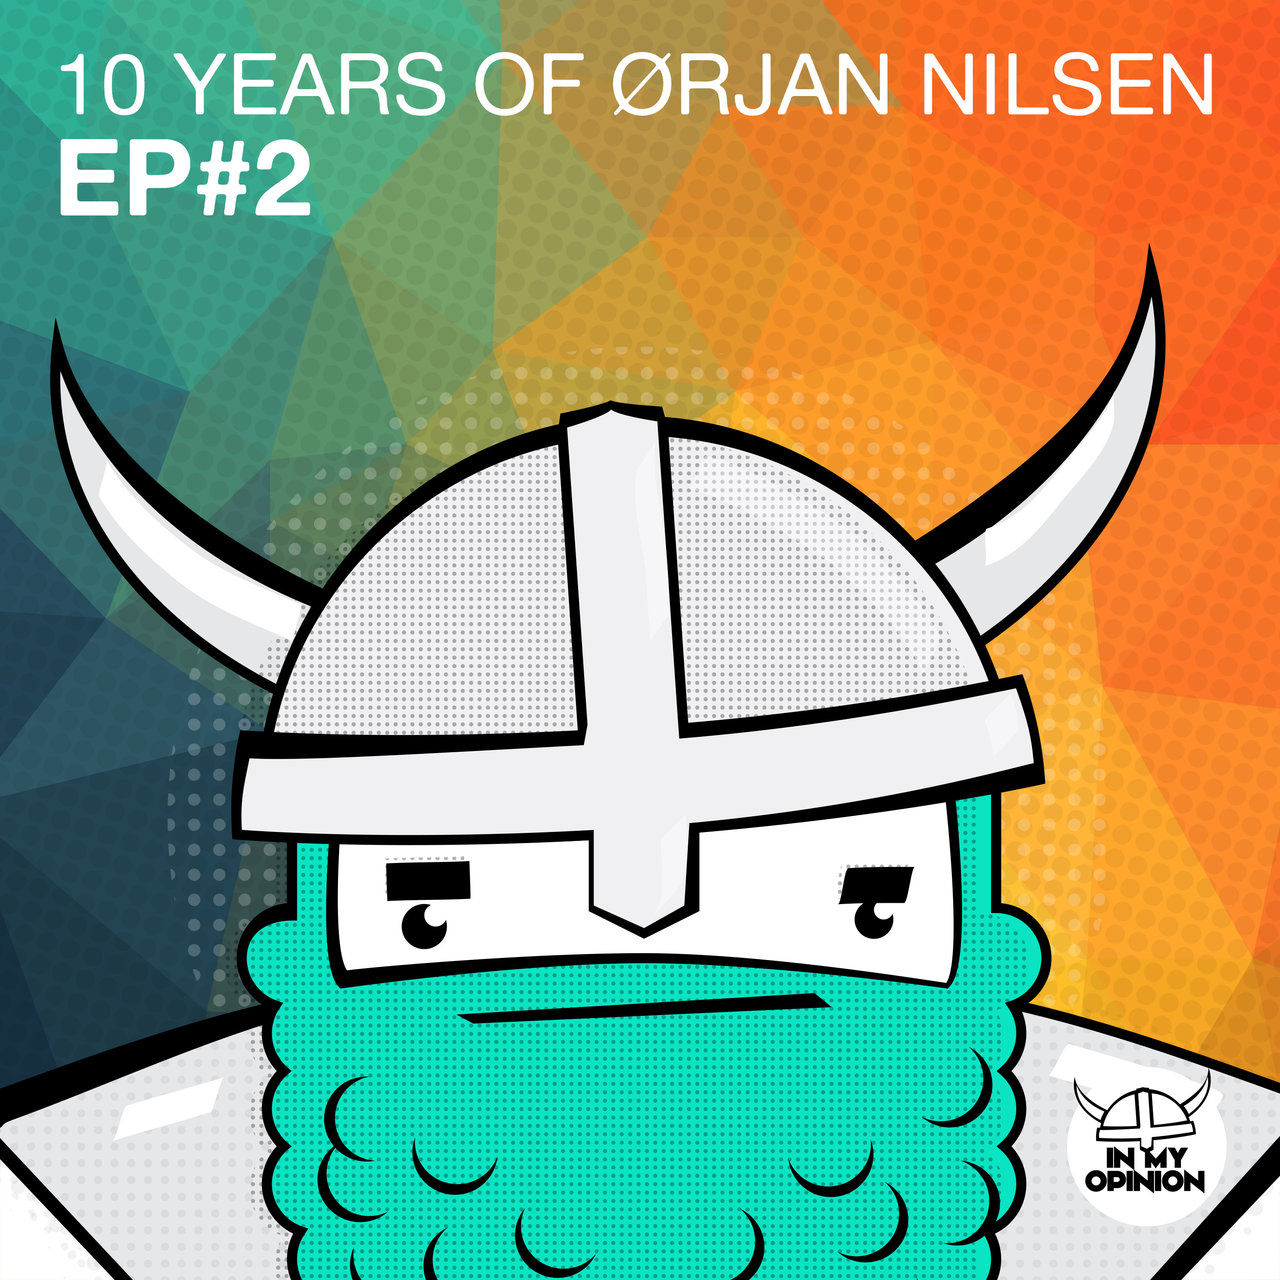 10 Years Of Orjan Nilsen EP#2